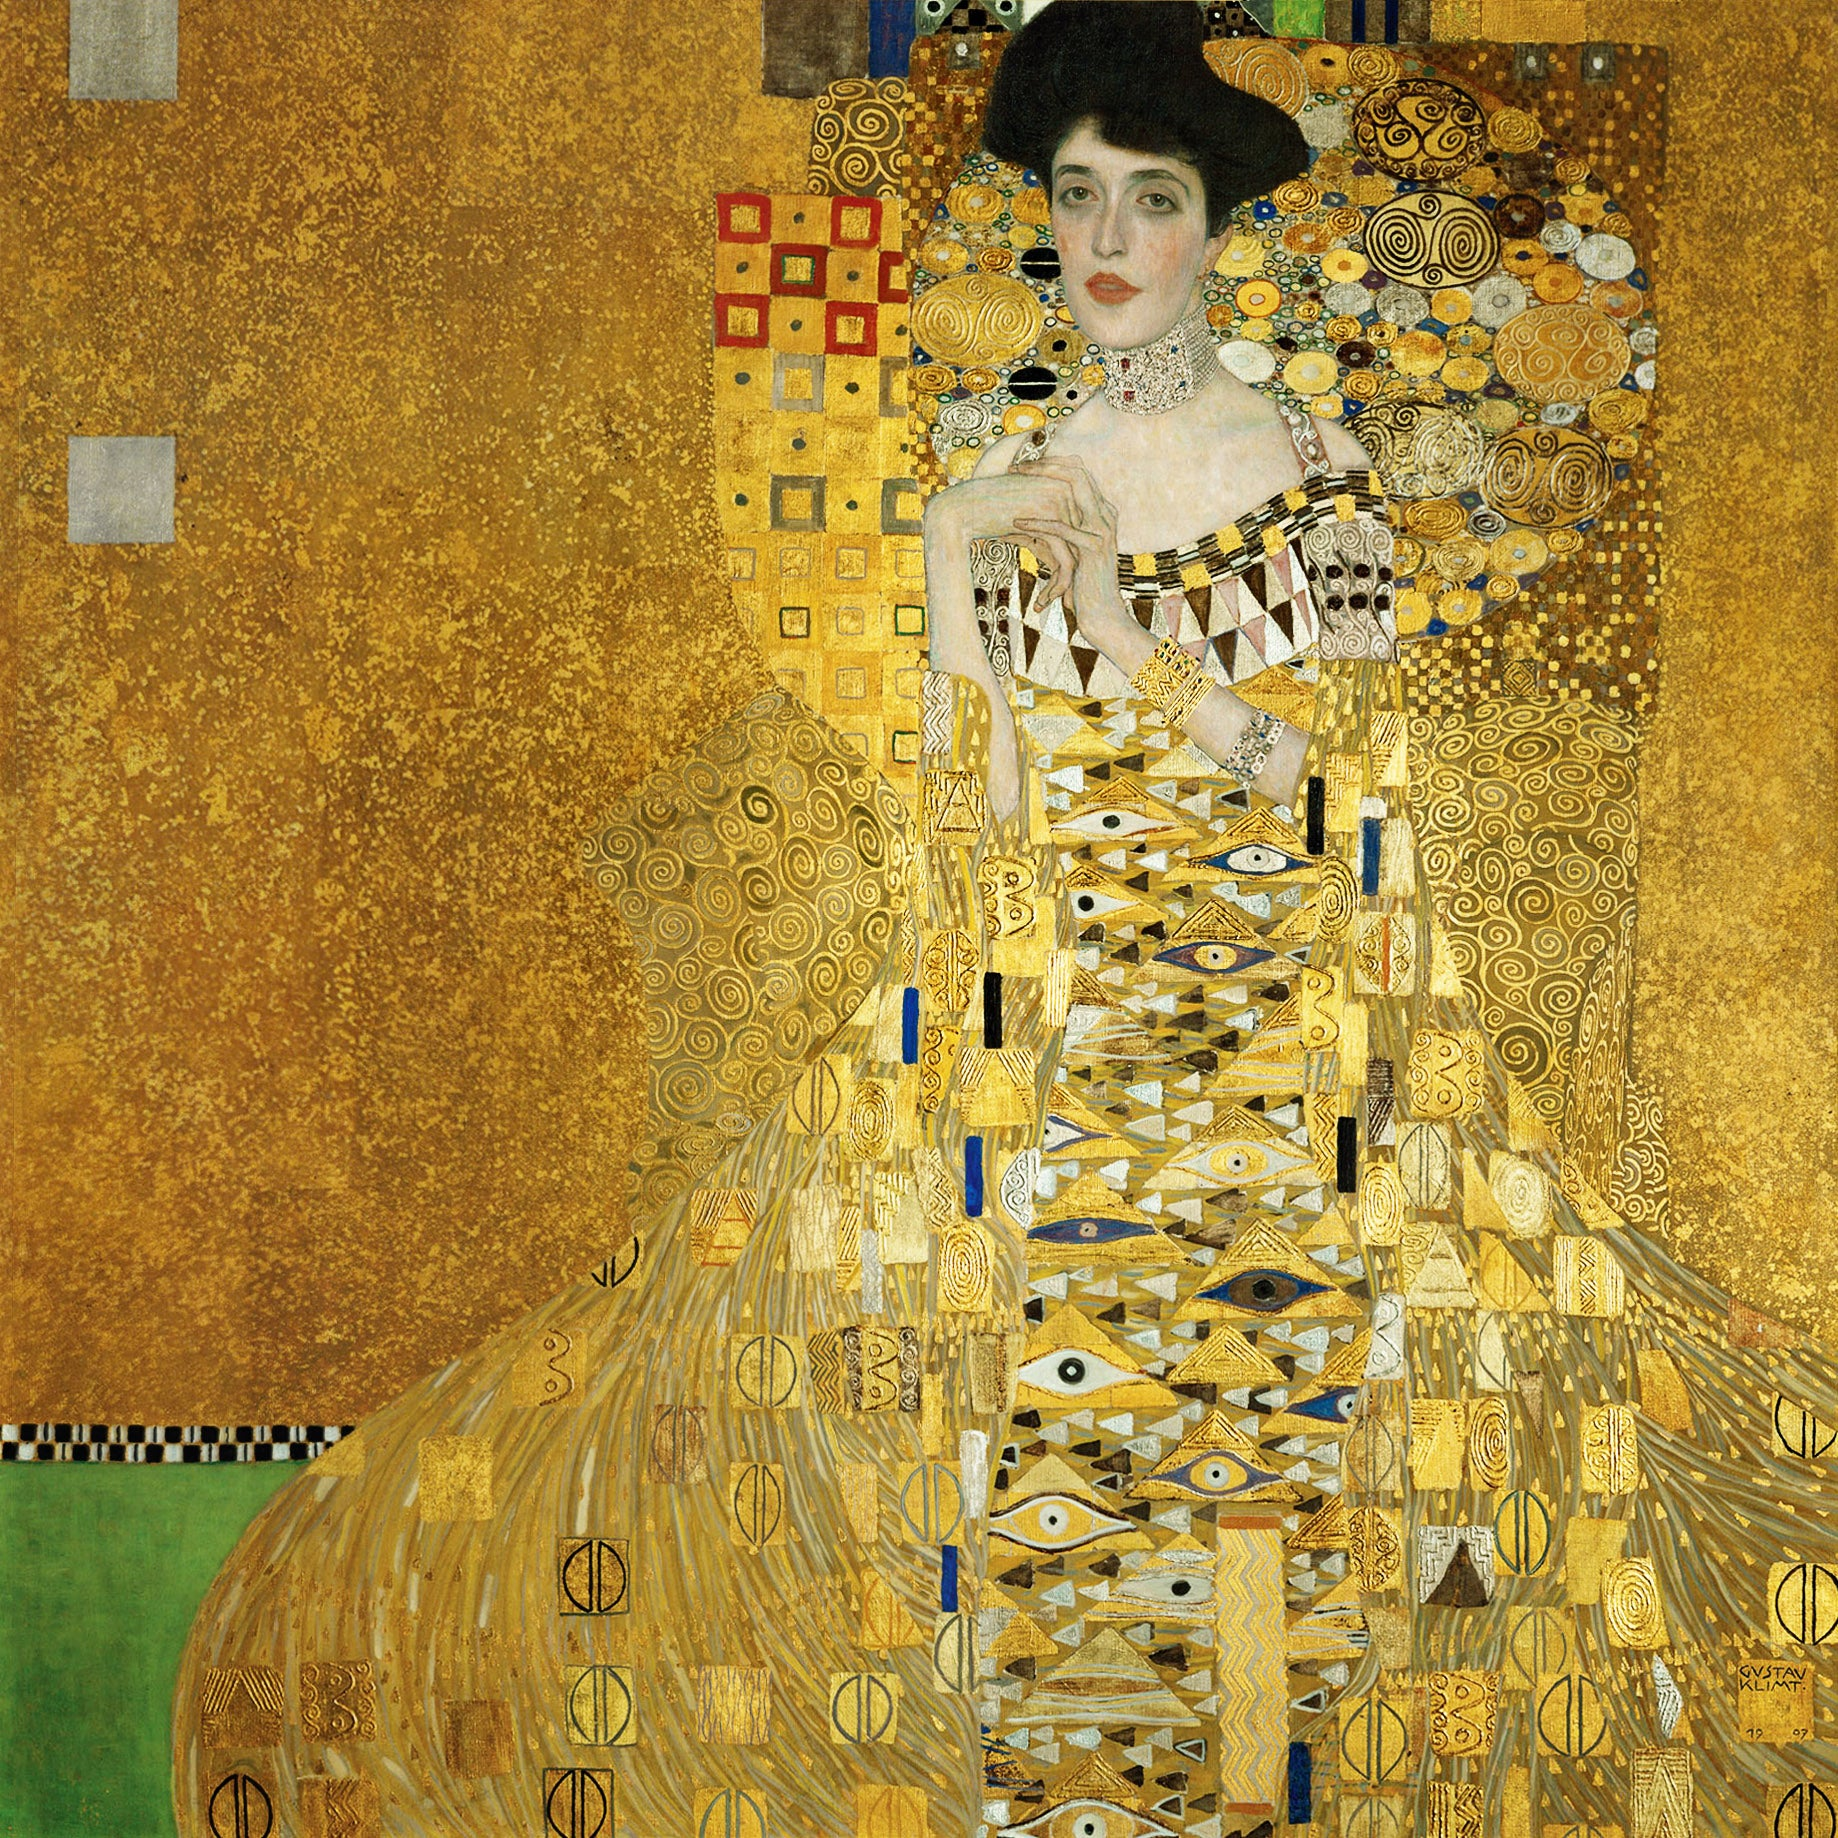 Portrait of Adele Bloch-Bauer by Gustav Klint